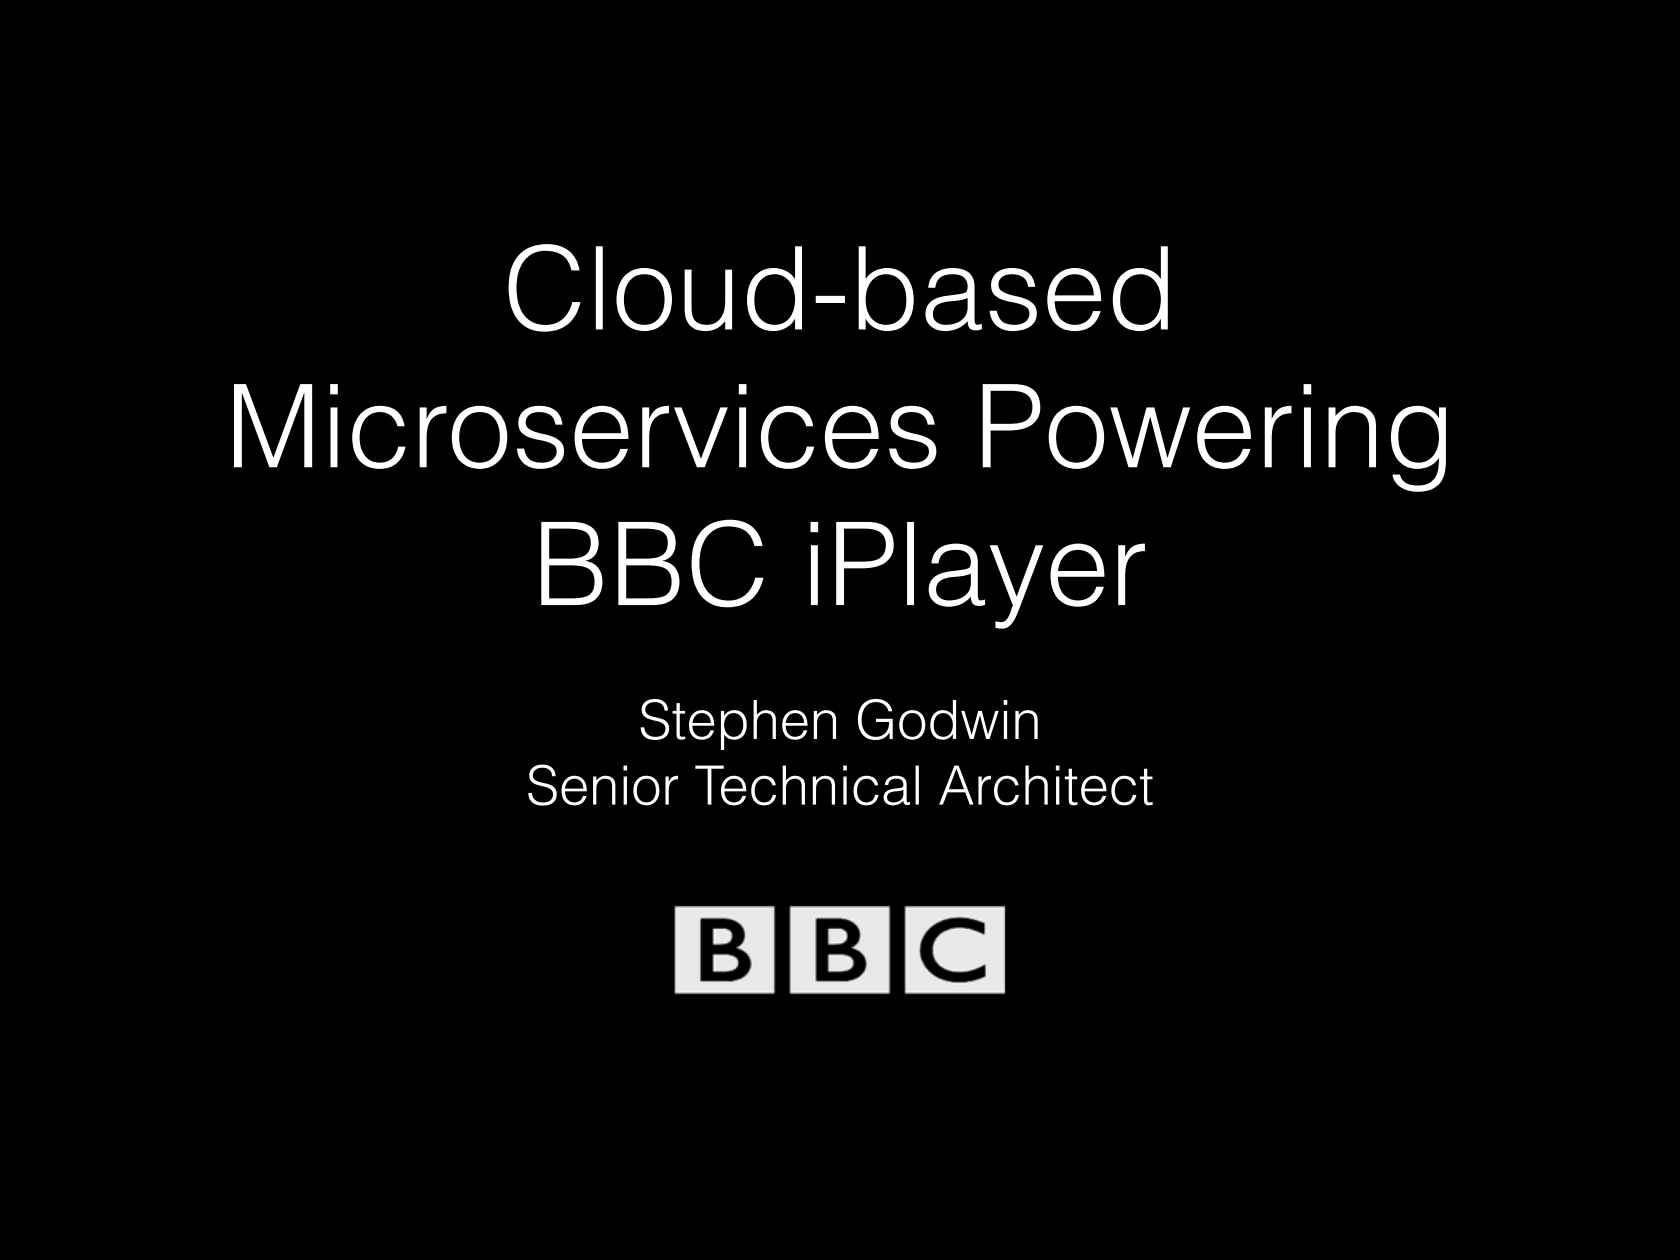 Cloud-based Microservices powering BBC iPlayer